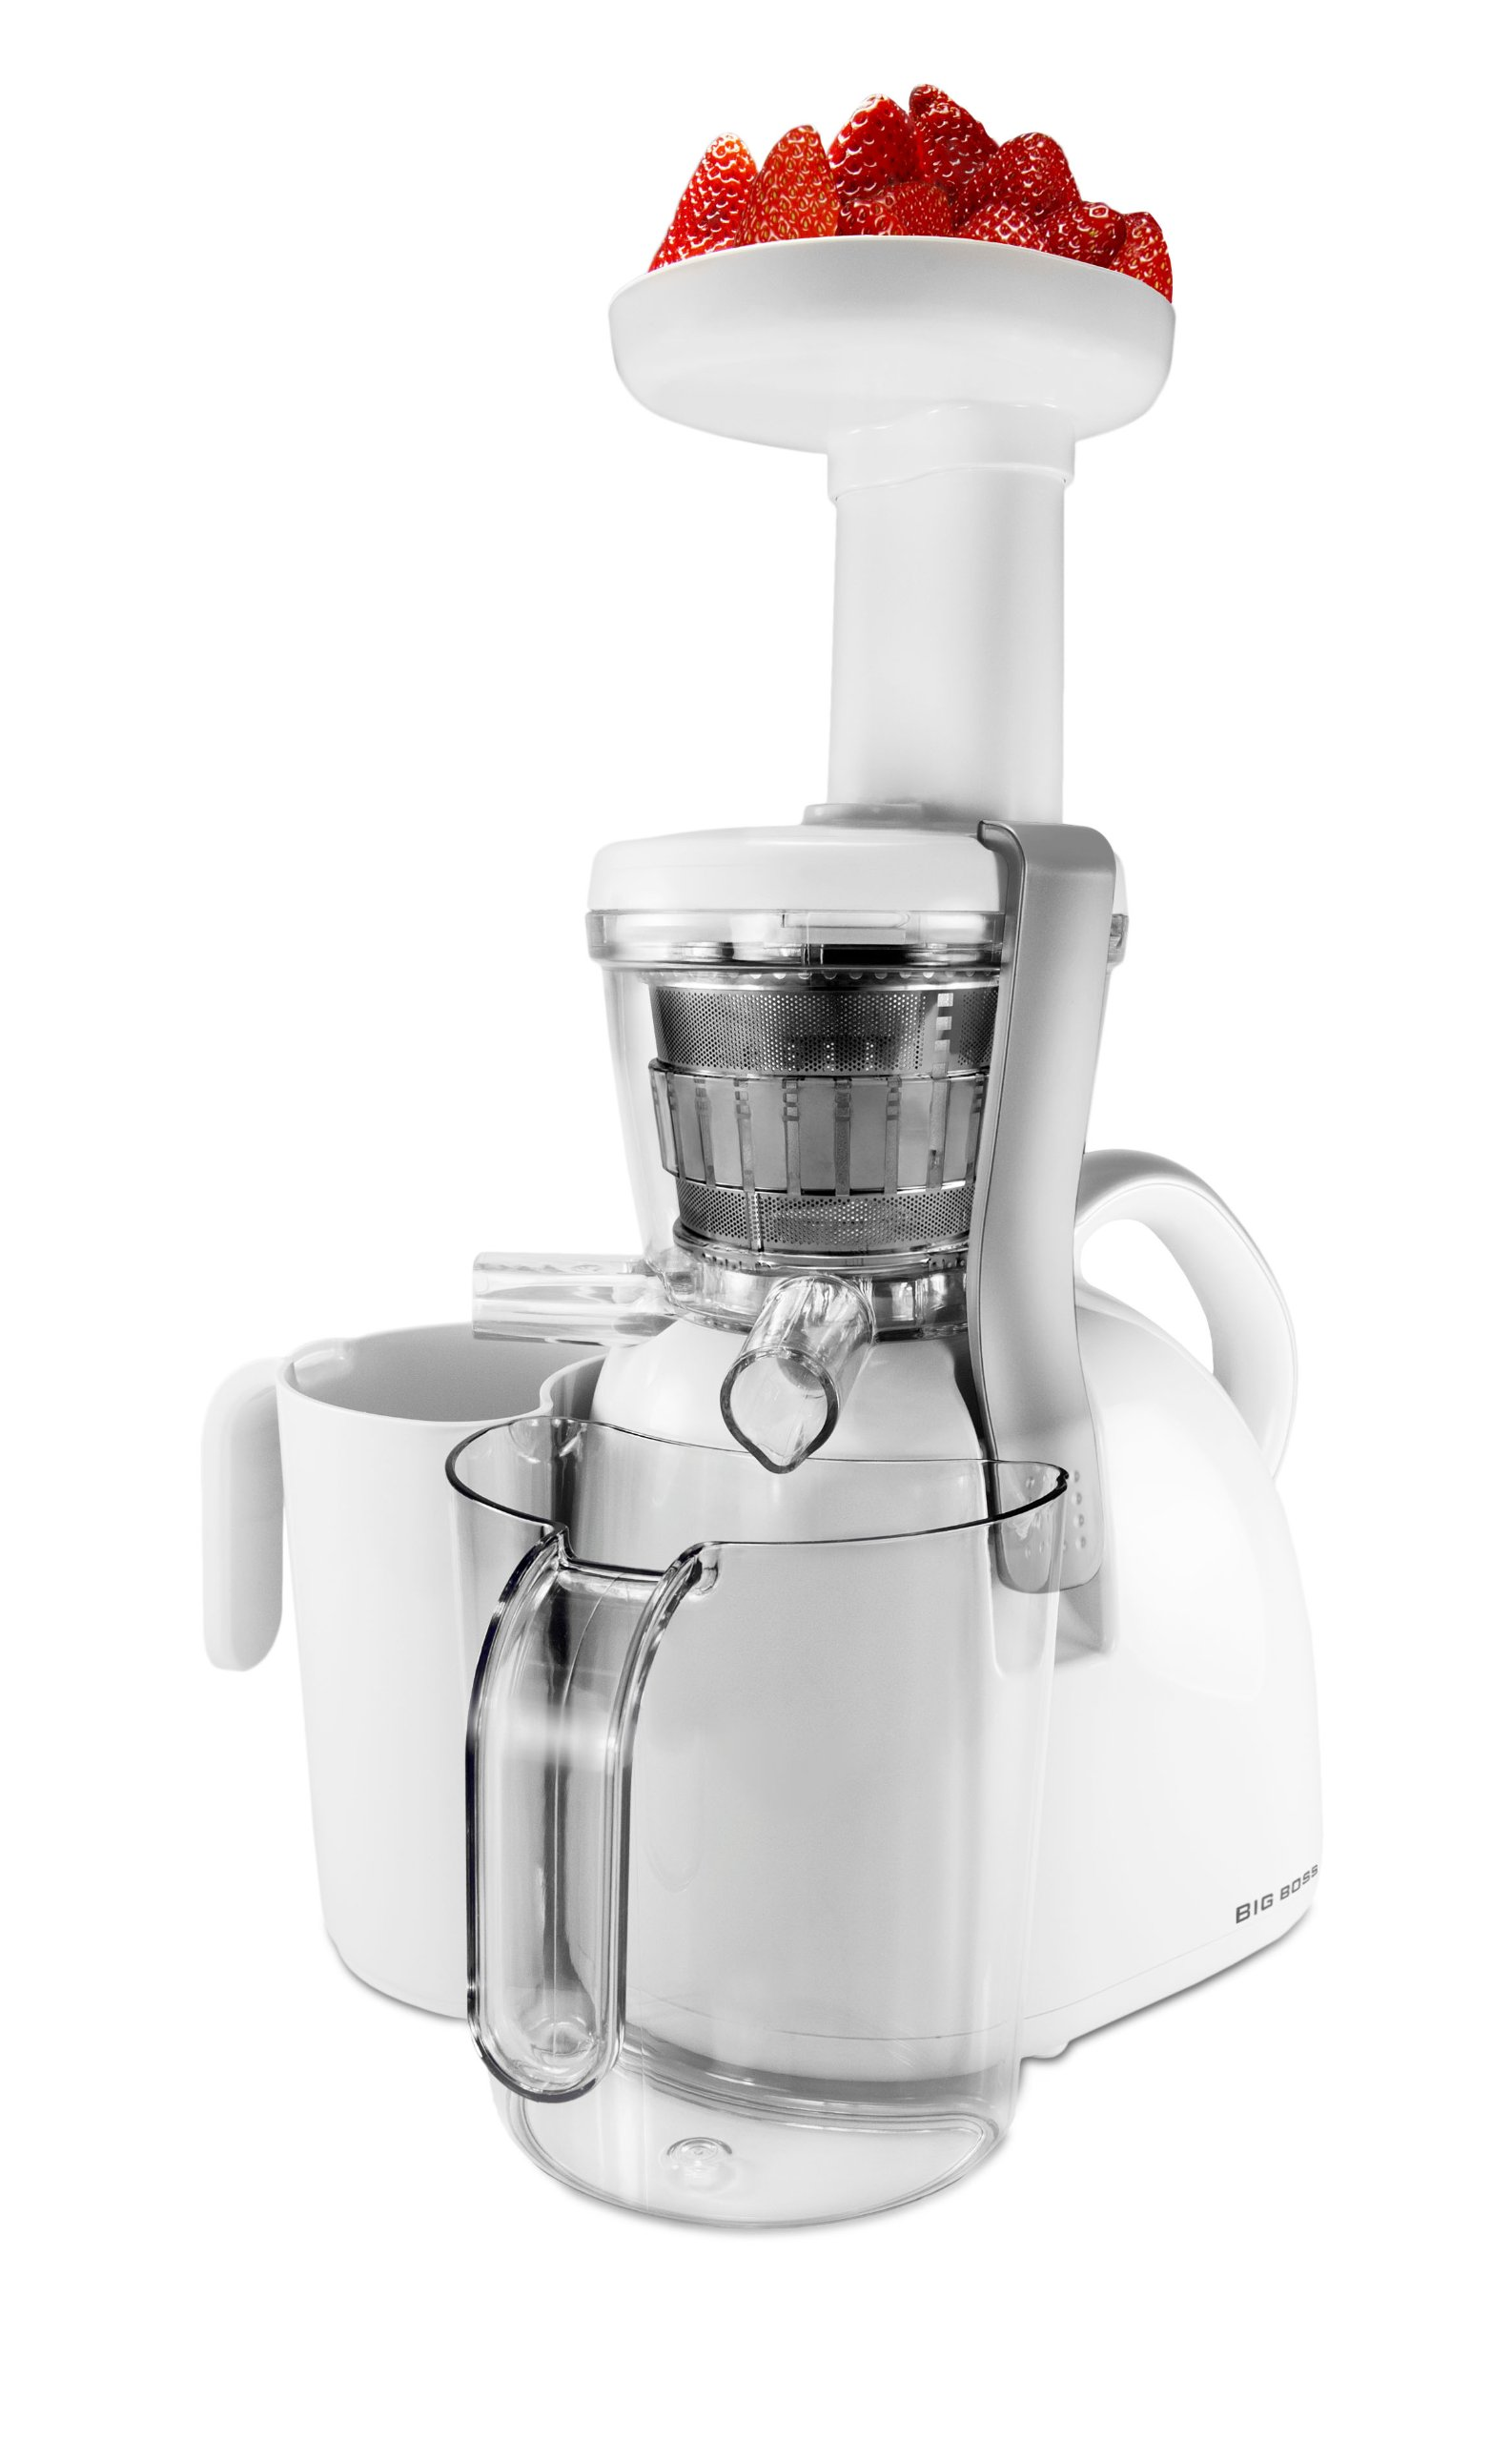 Big Boss 9192 Nutritionally Beneficial Slow Juicer, White